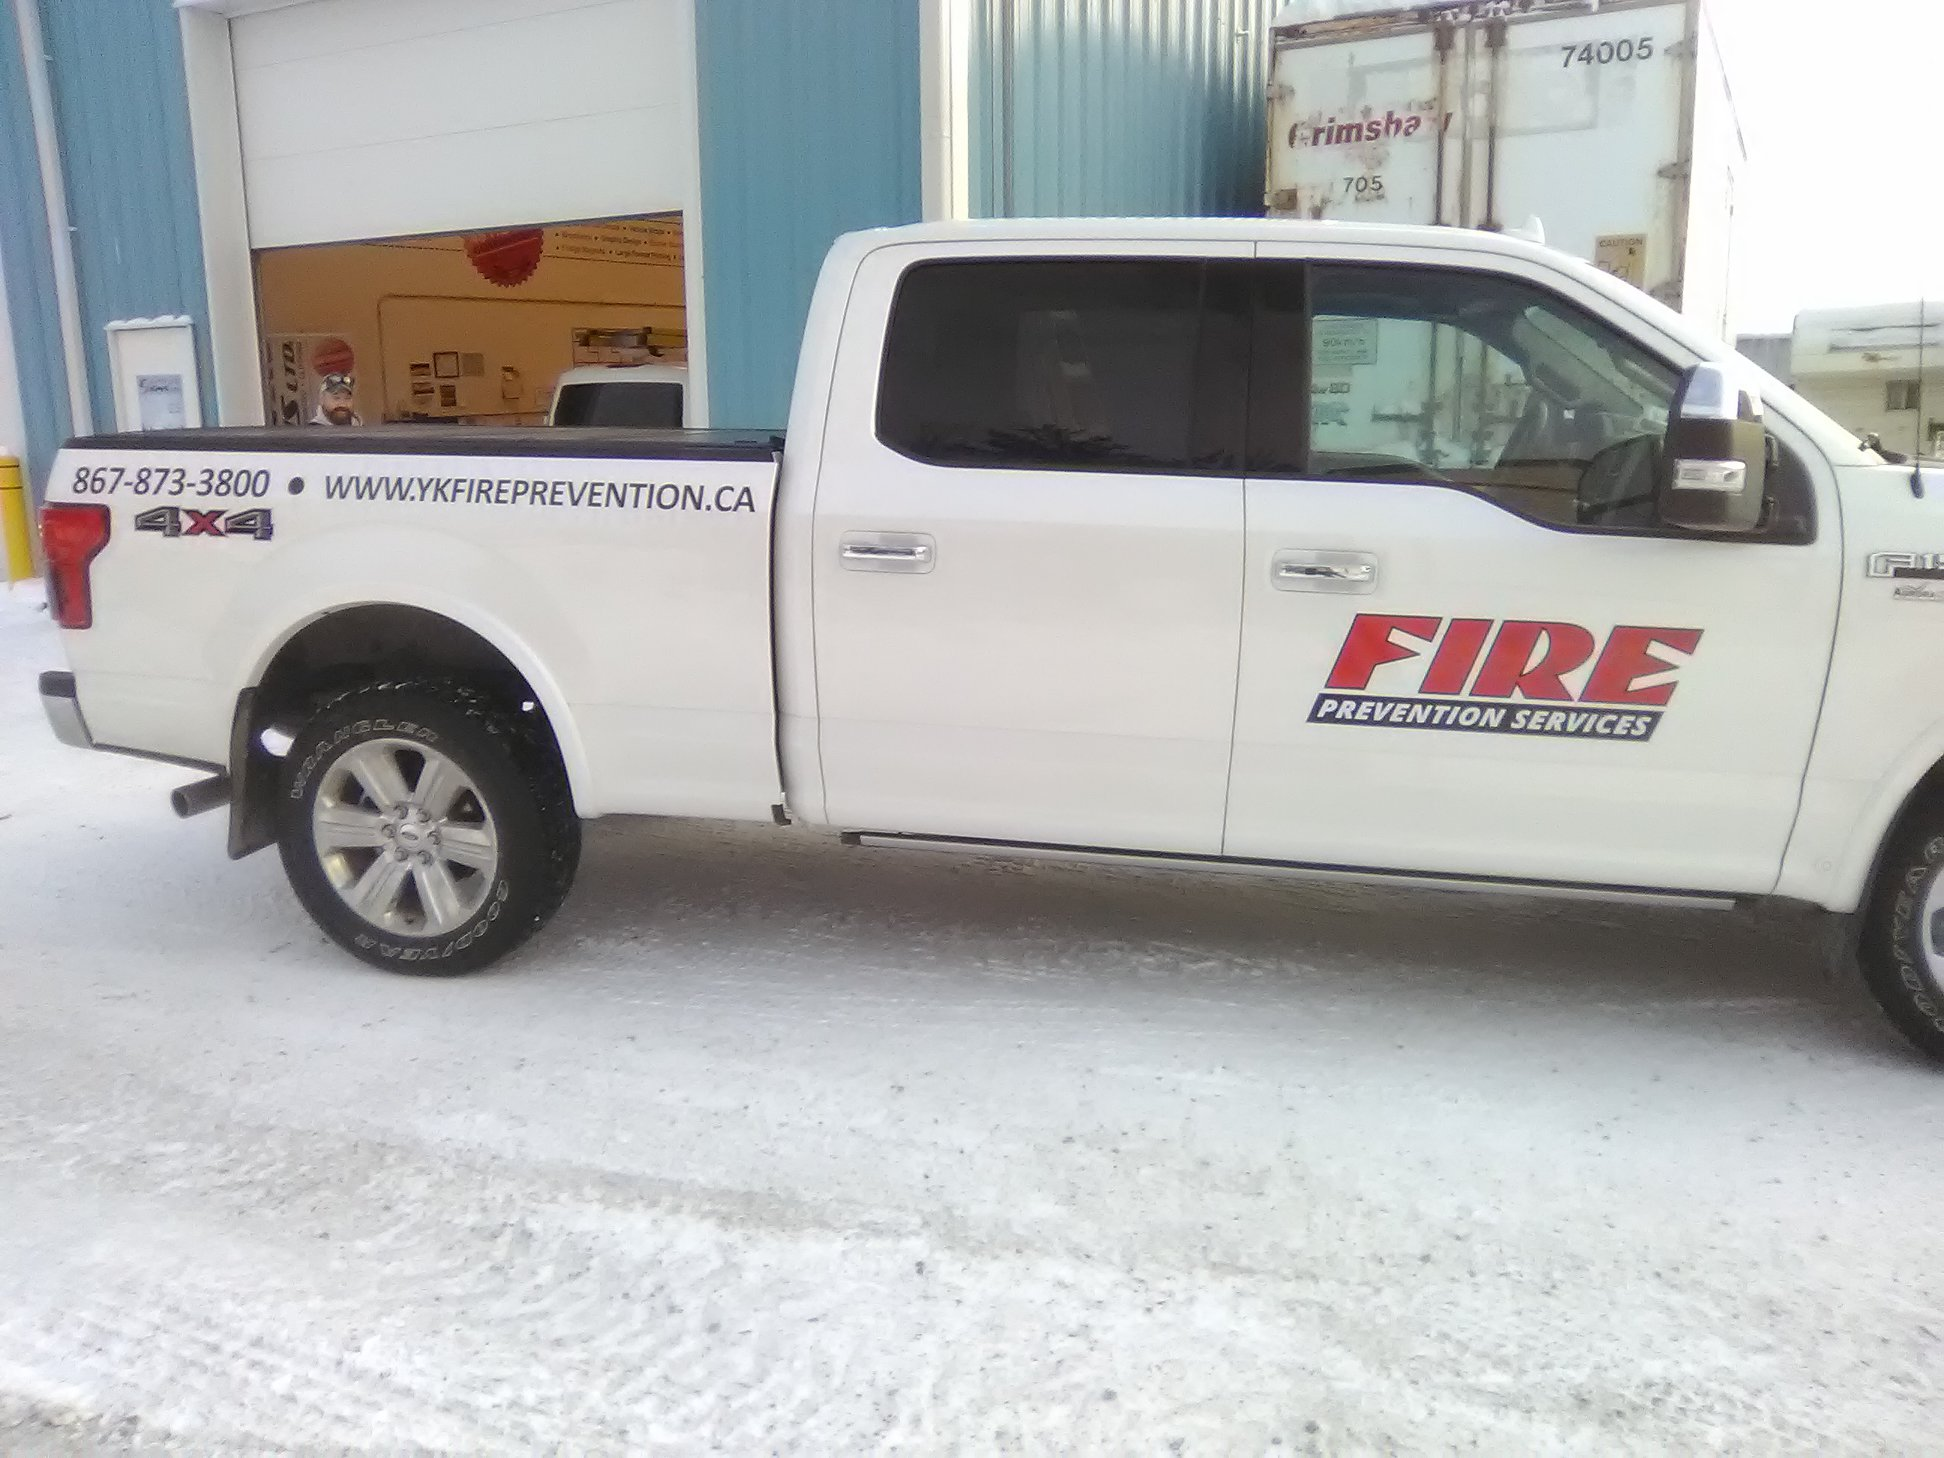 Fire Prevention Services Fleet Decals